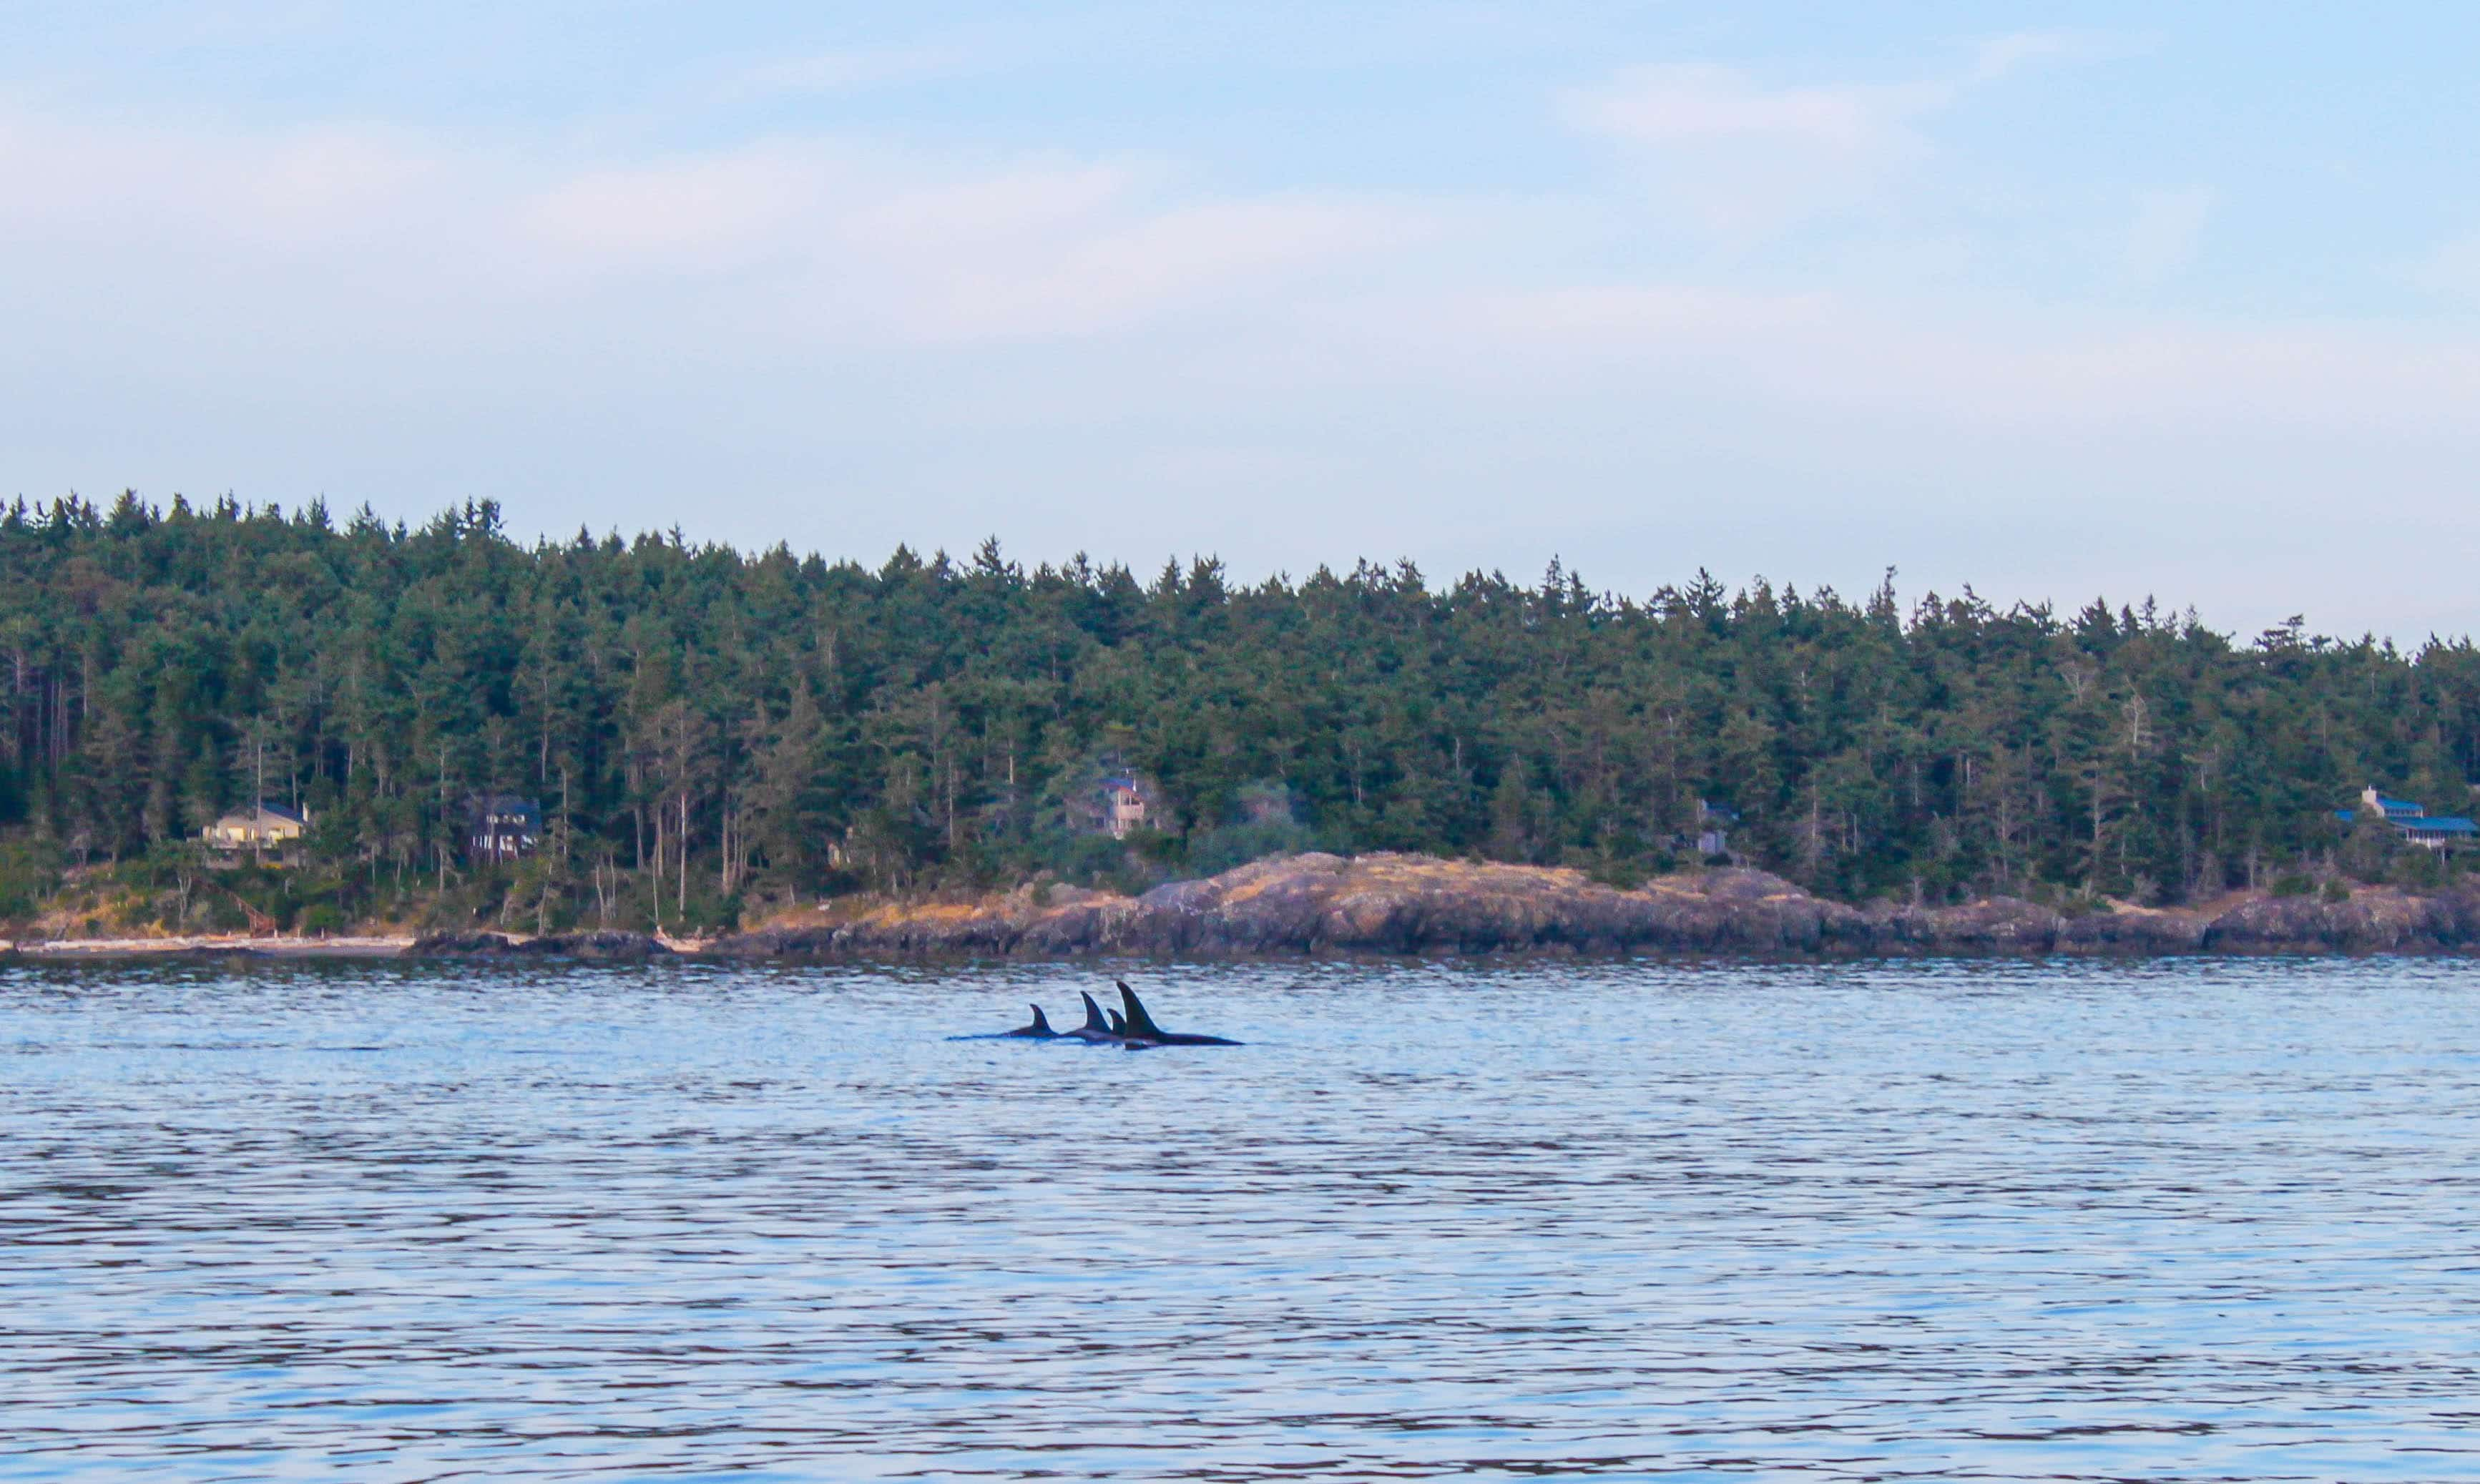 Whale Staking In The San Juan Islands